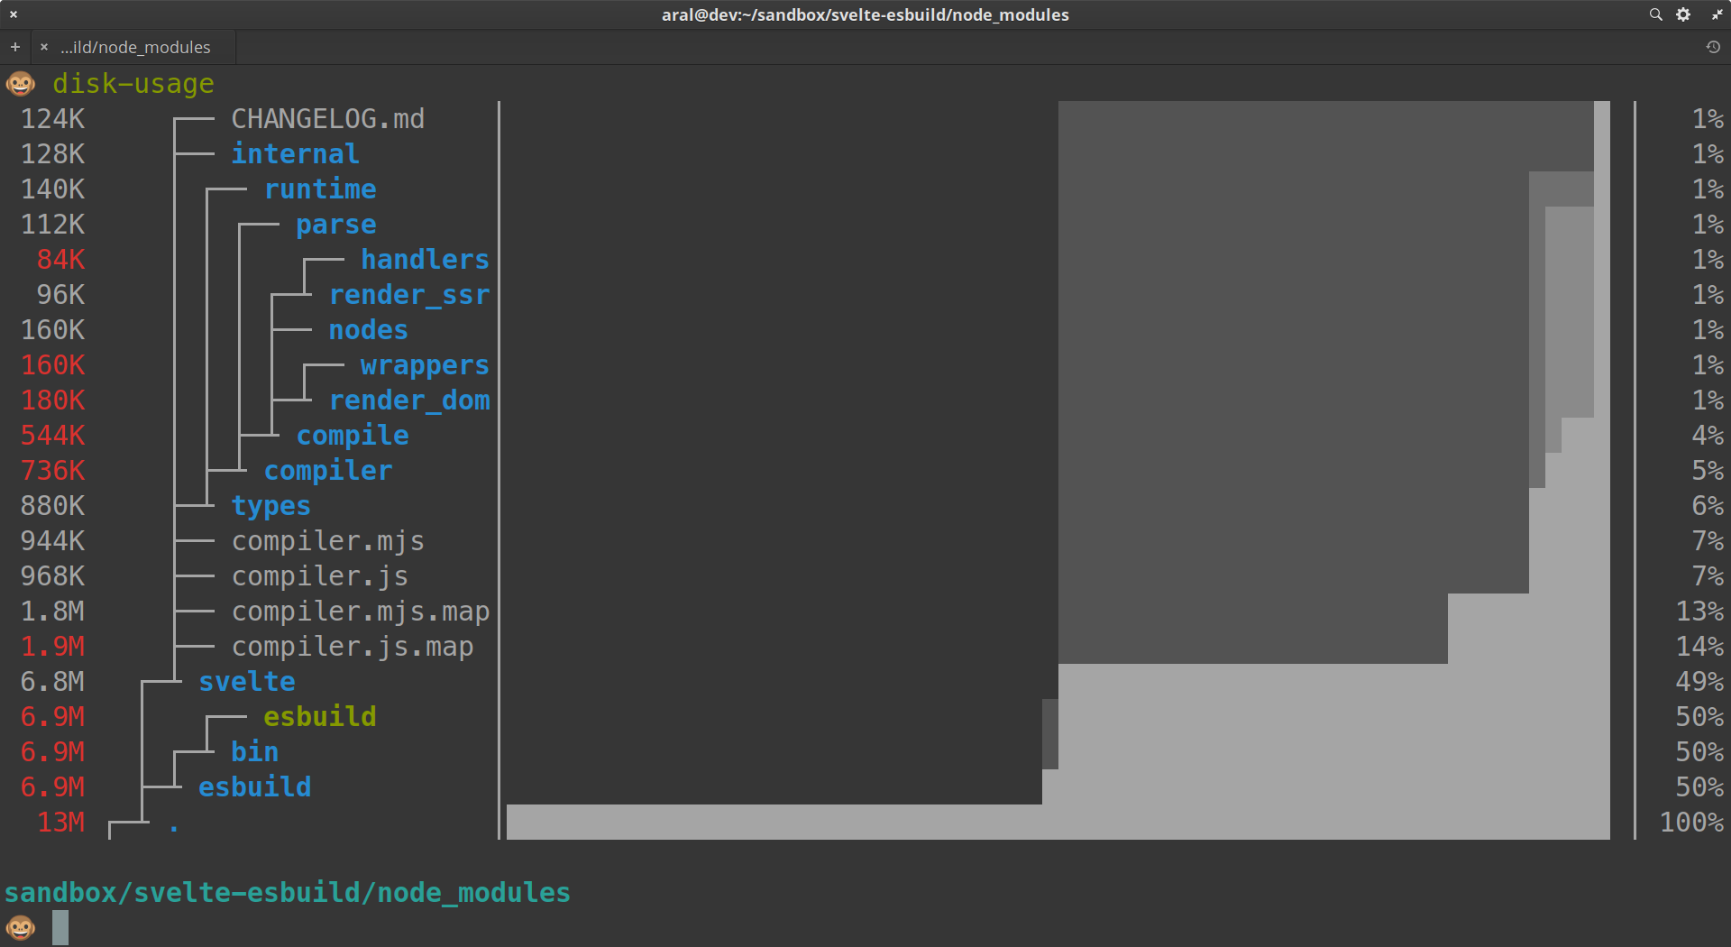 Screenshot of dust in terminal (aliased to disk-usage). Tree of directories and their sizes on the left and a graph of relative sizes on the right.